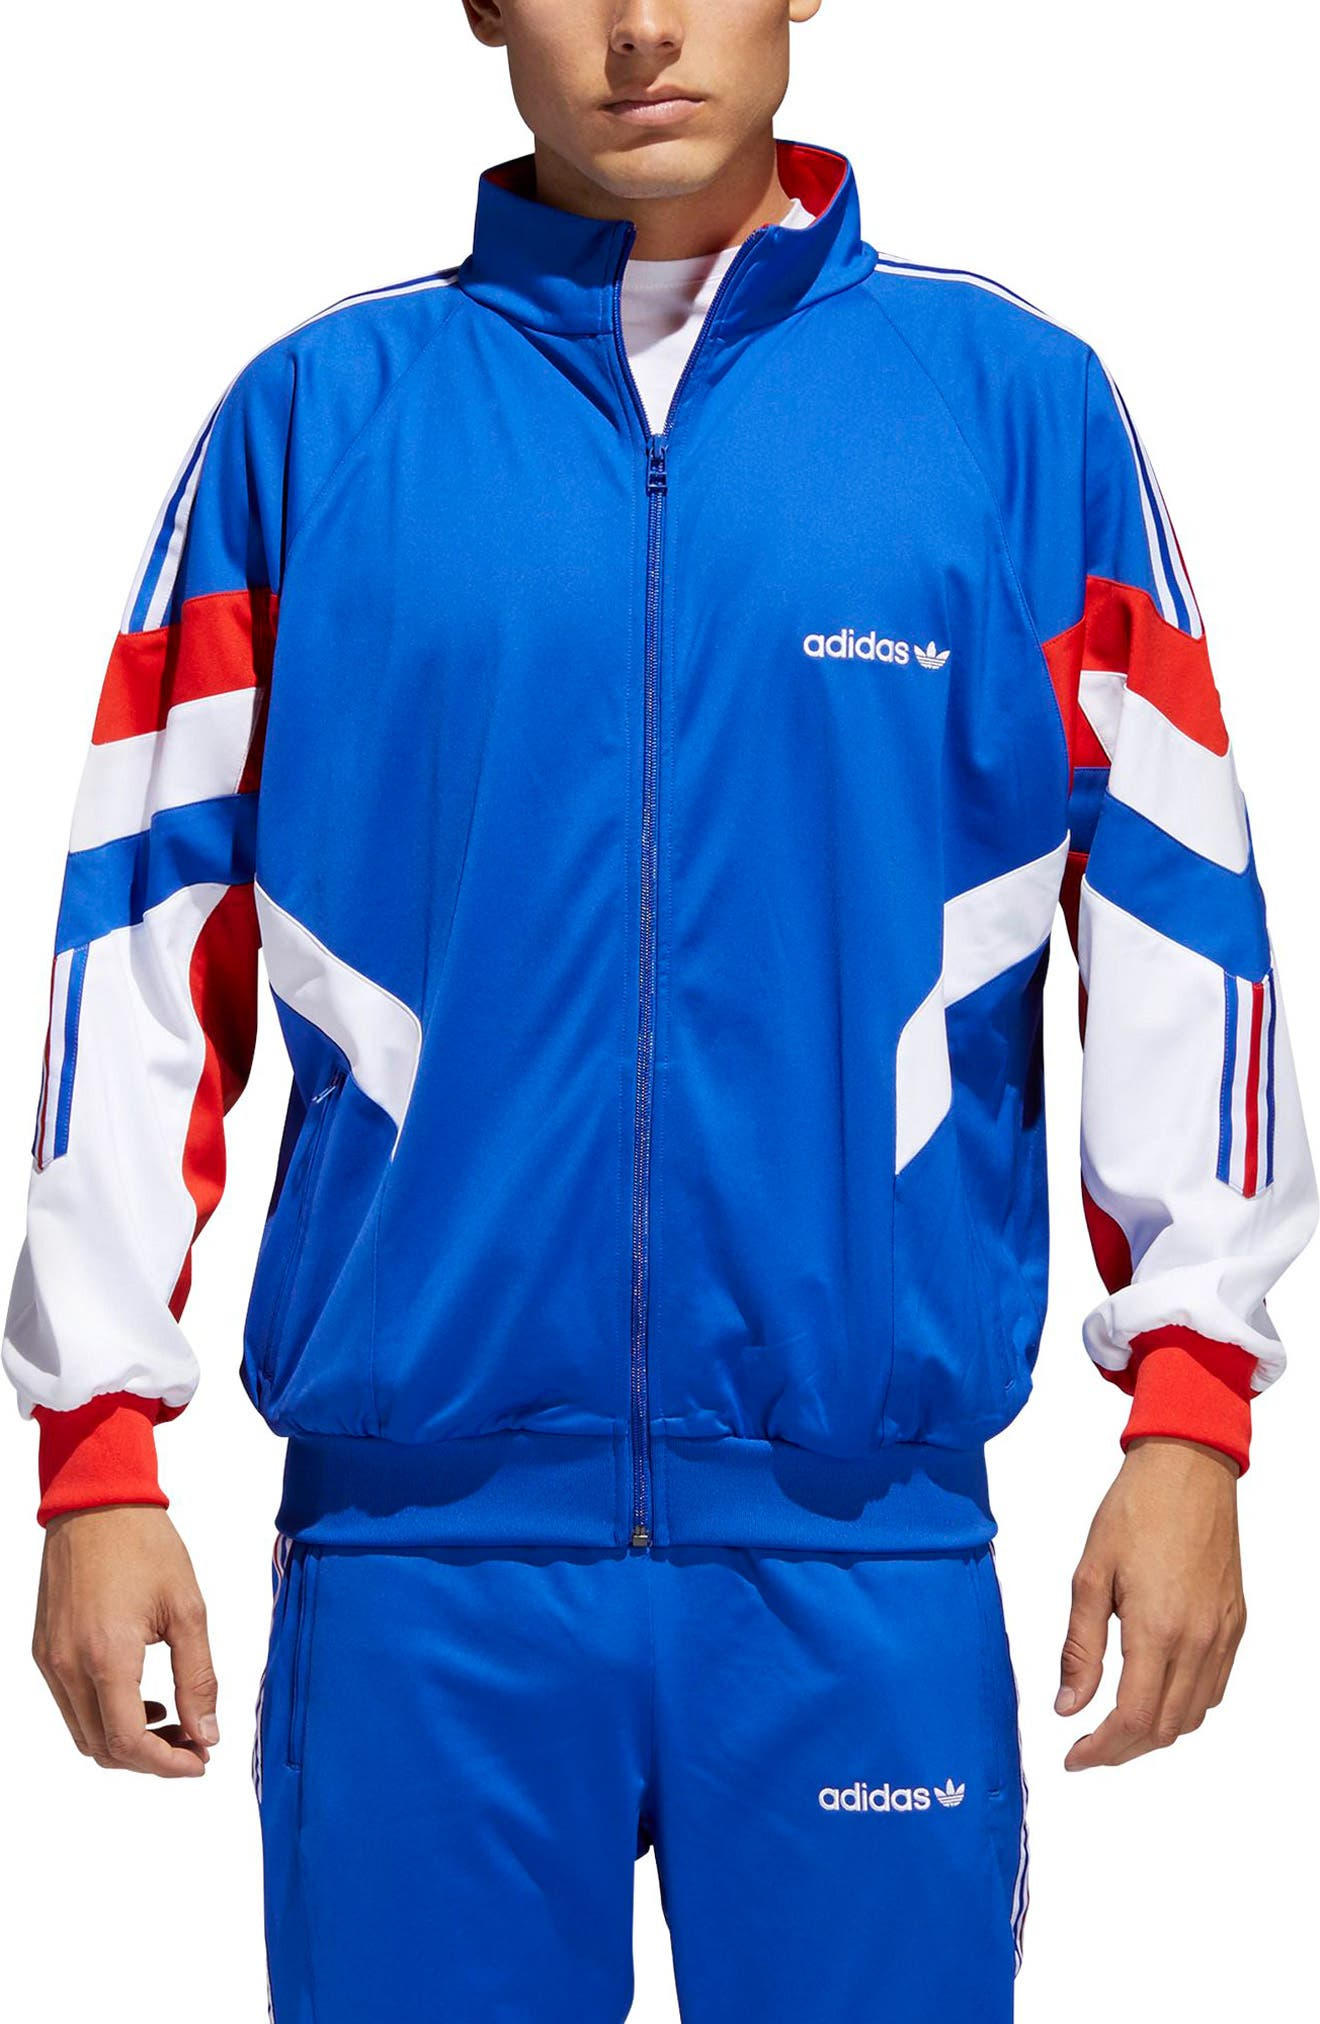 adidas Originals Aloxe Track Jacket